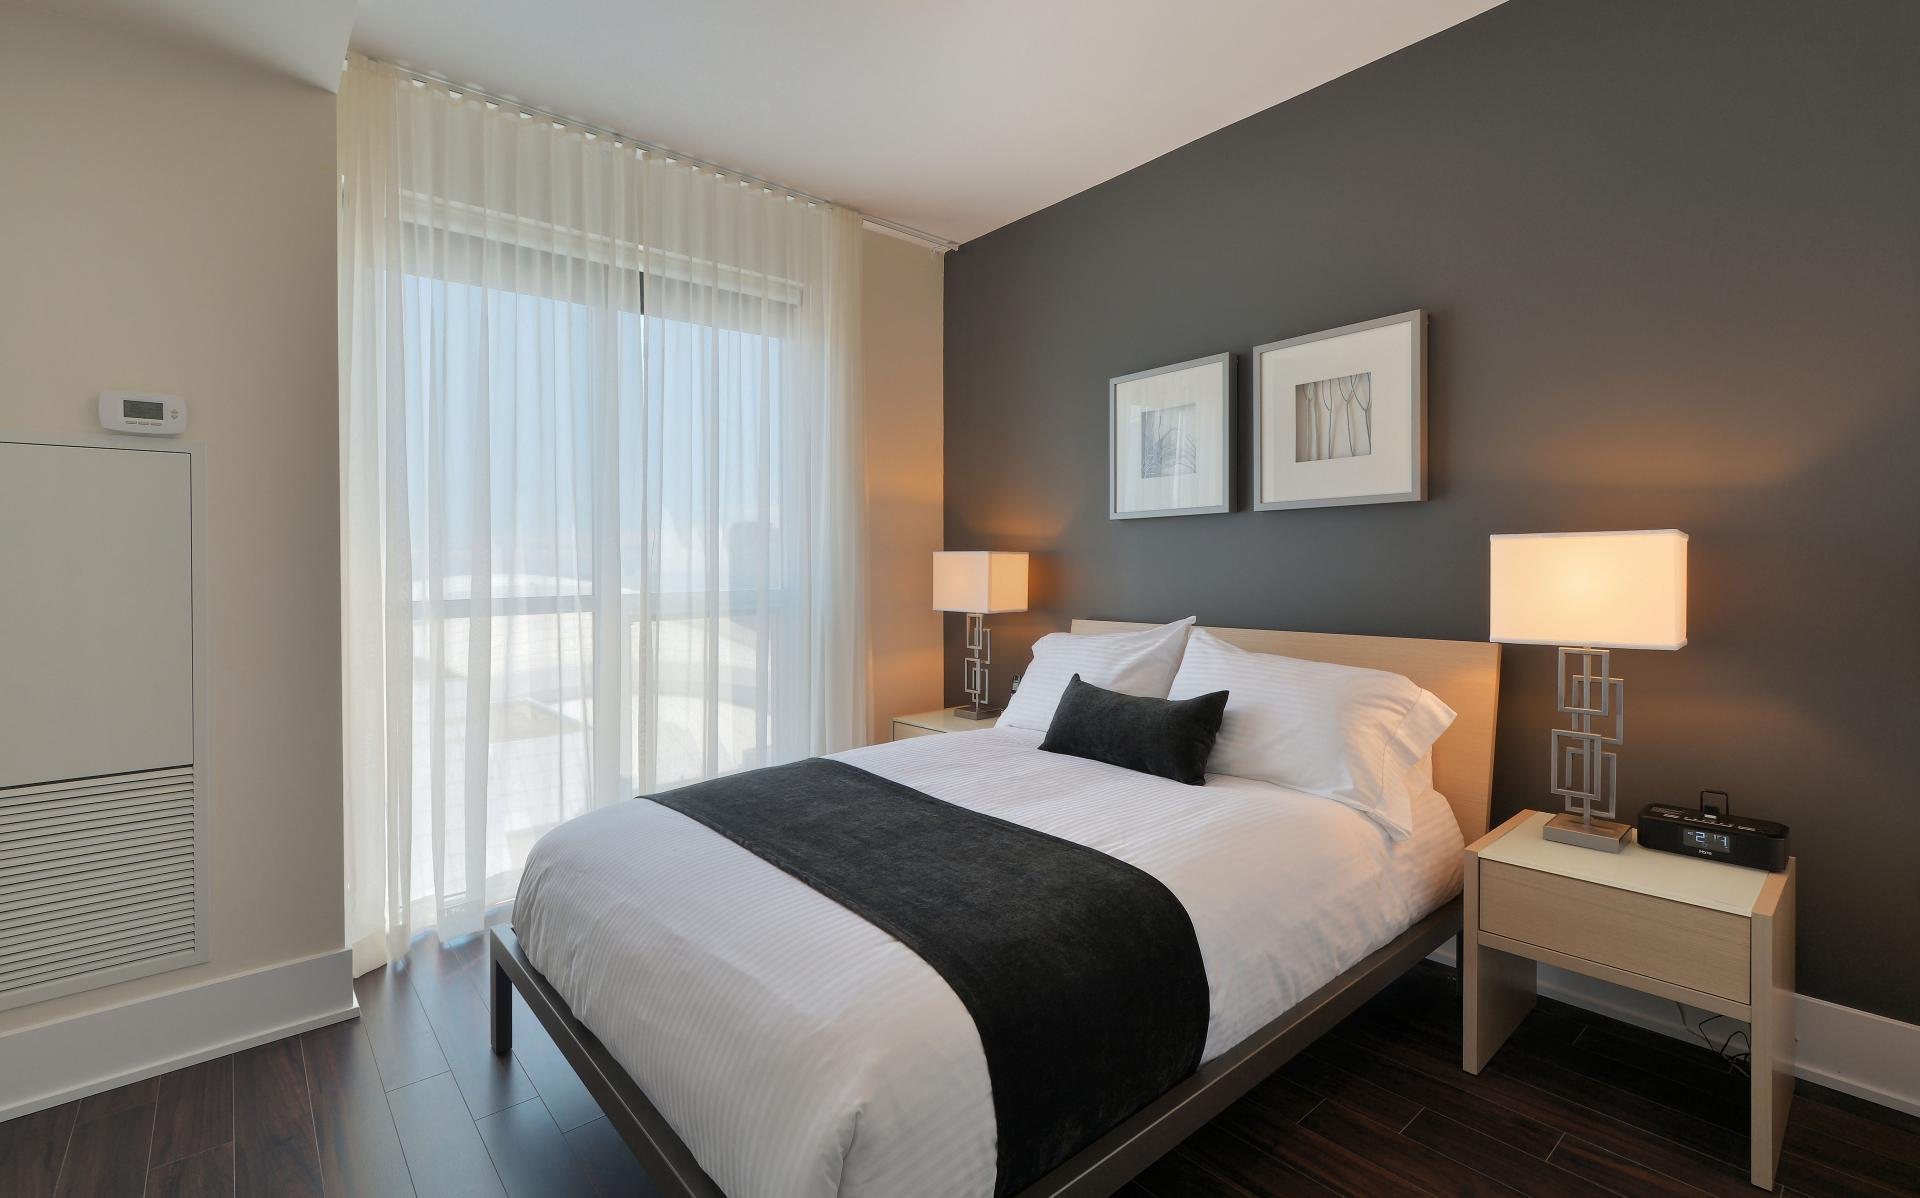 Cosy bedroom at 300 Front Street West Delsuites - Citybase Apartments